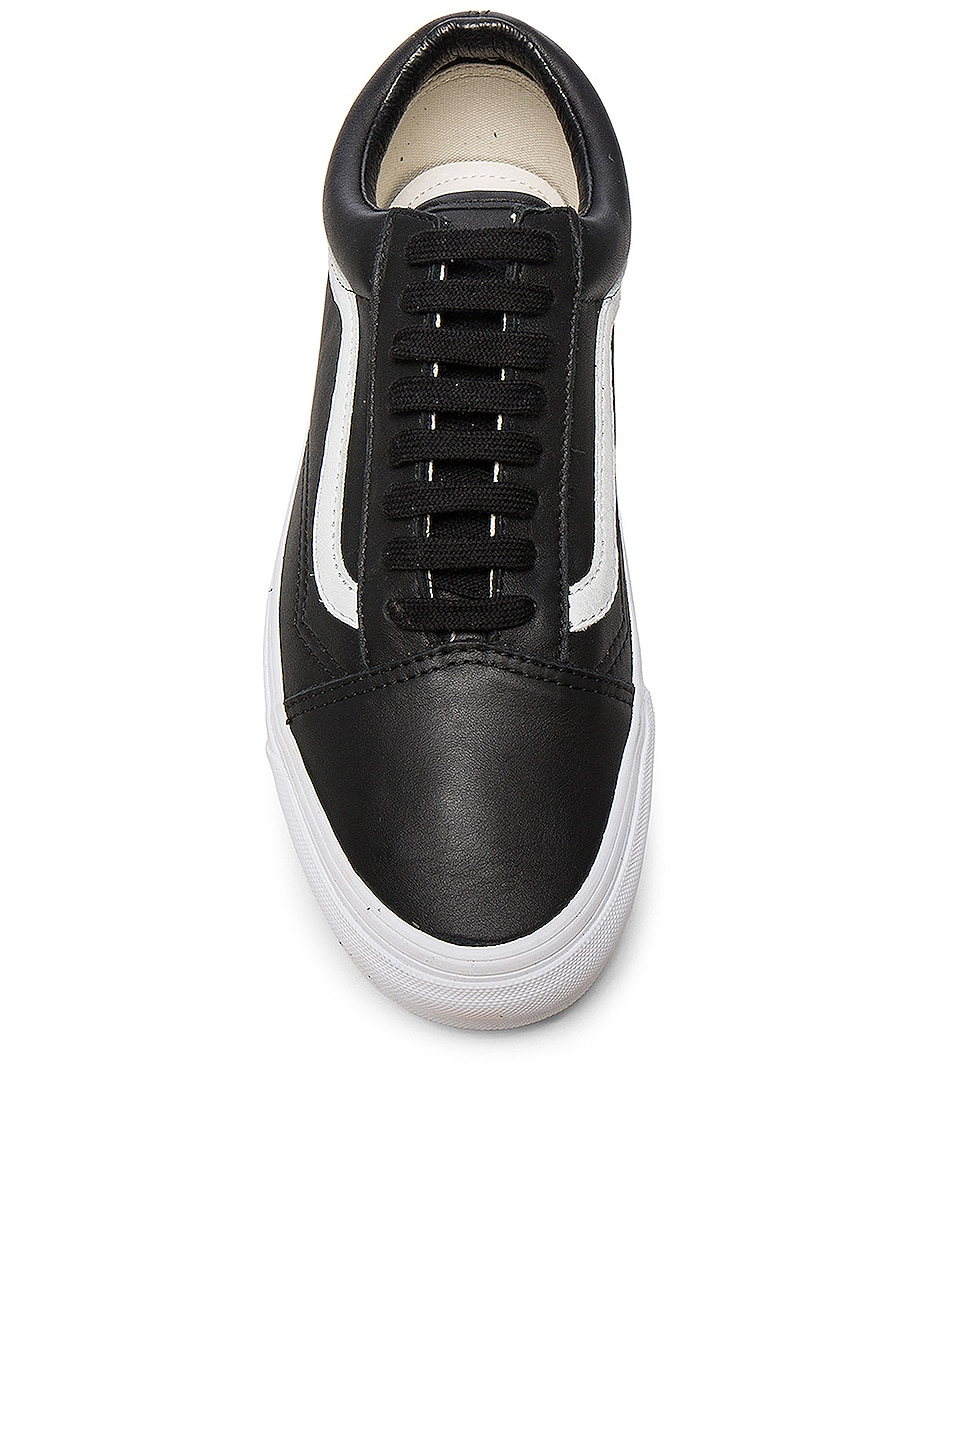 6512720e0e Image 4 of Vans Vault OG Leather Old Skool LX in Black